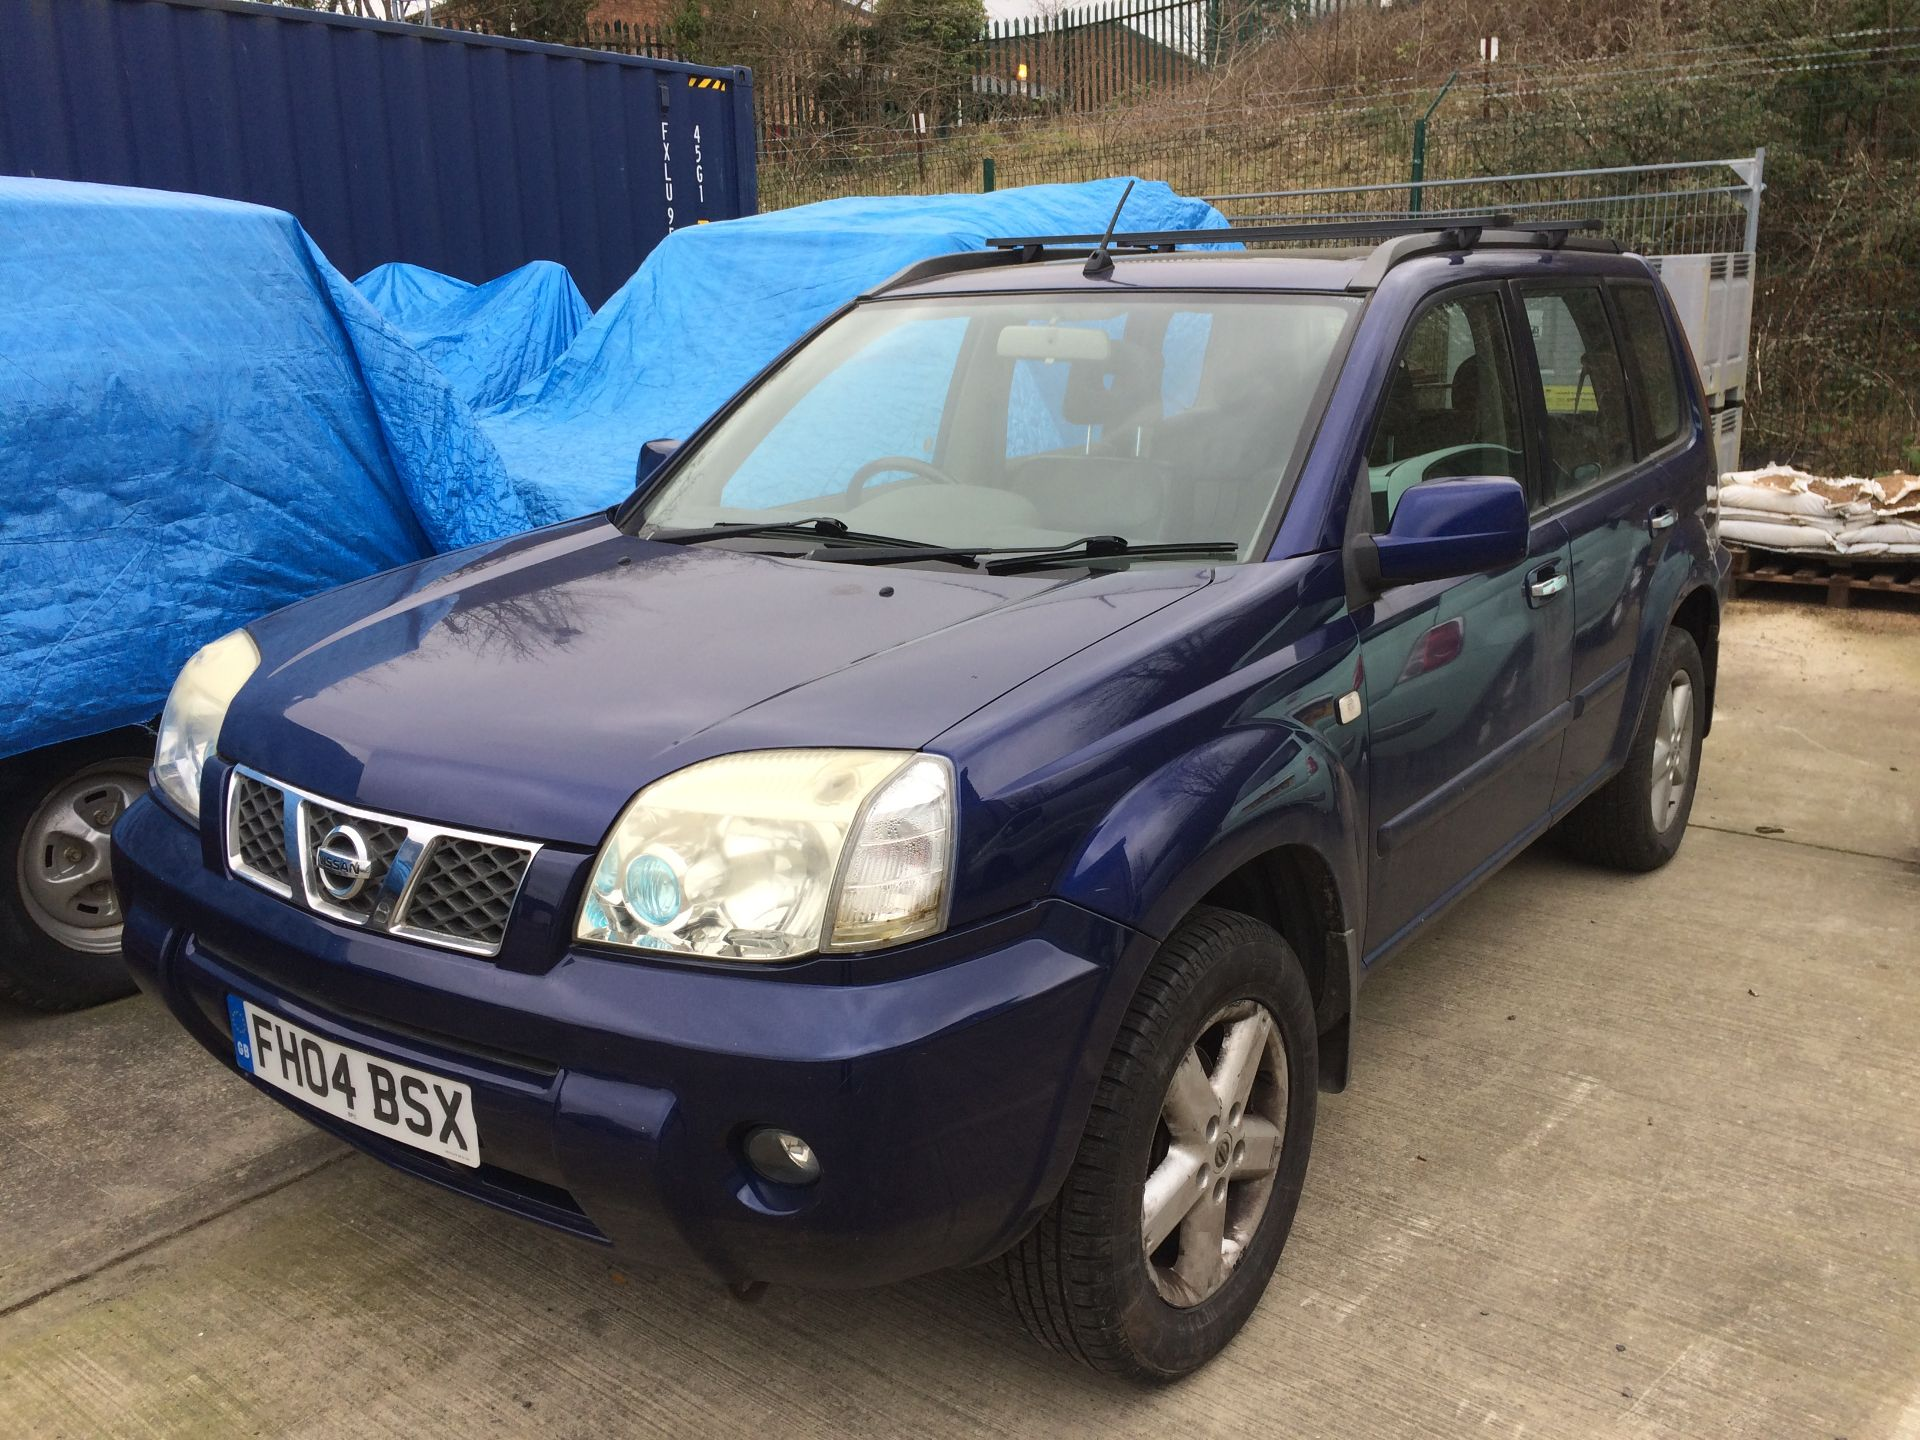 NISSAN X-TRAIL ESTATE 2.5 AUTOMATIC 5 DOOR ESTATE - Petrol - Blue - Black leather interior. - Image 2 of 5